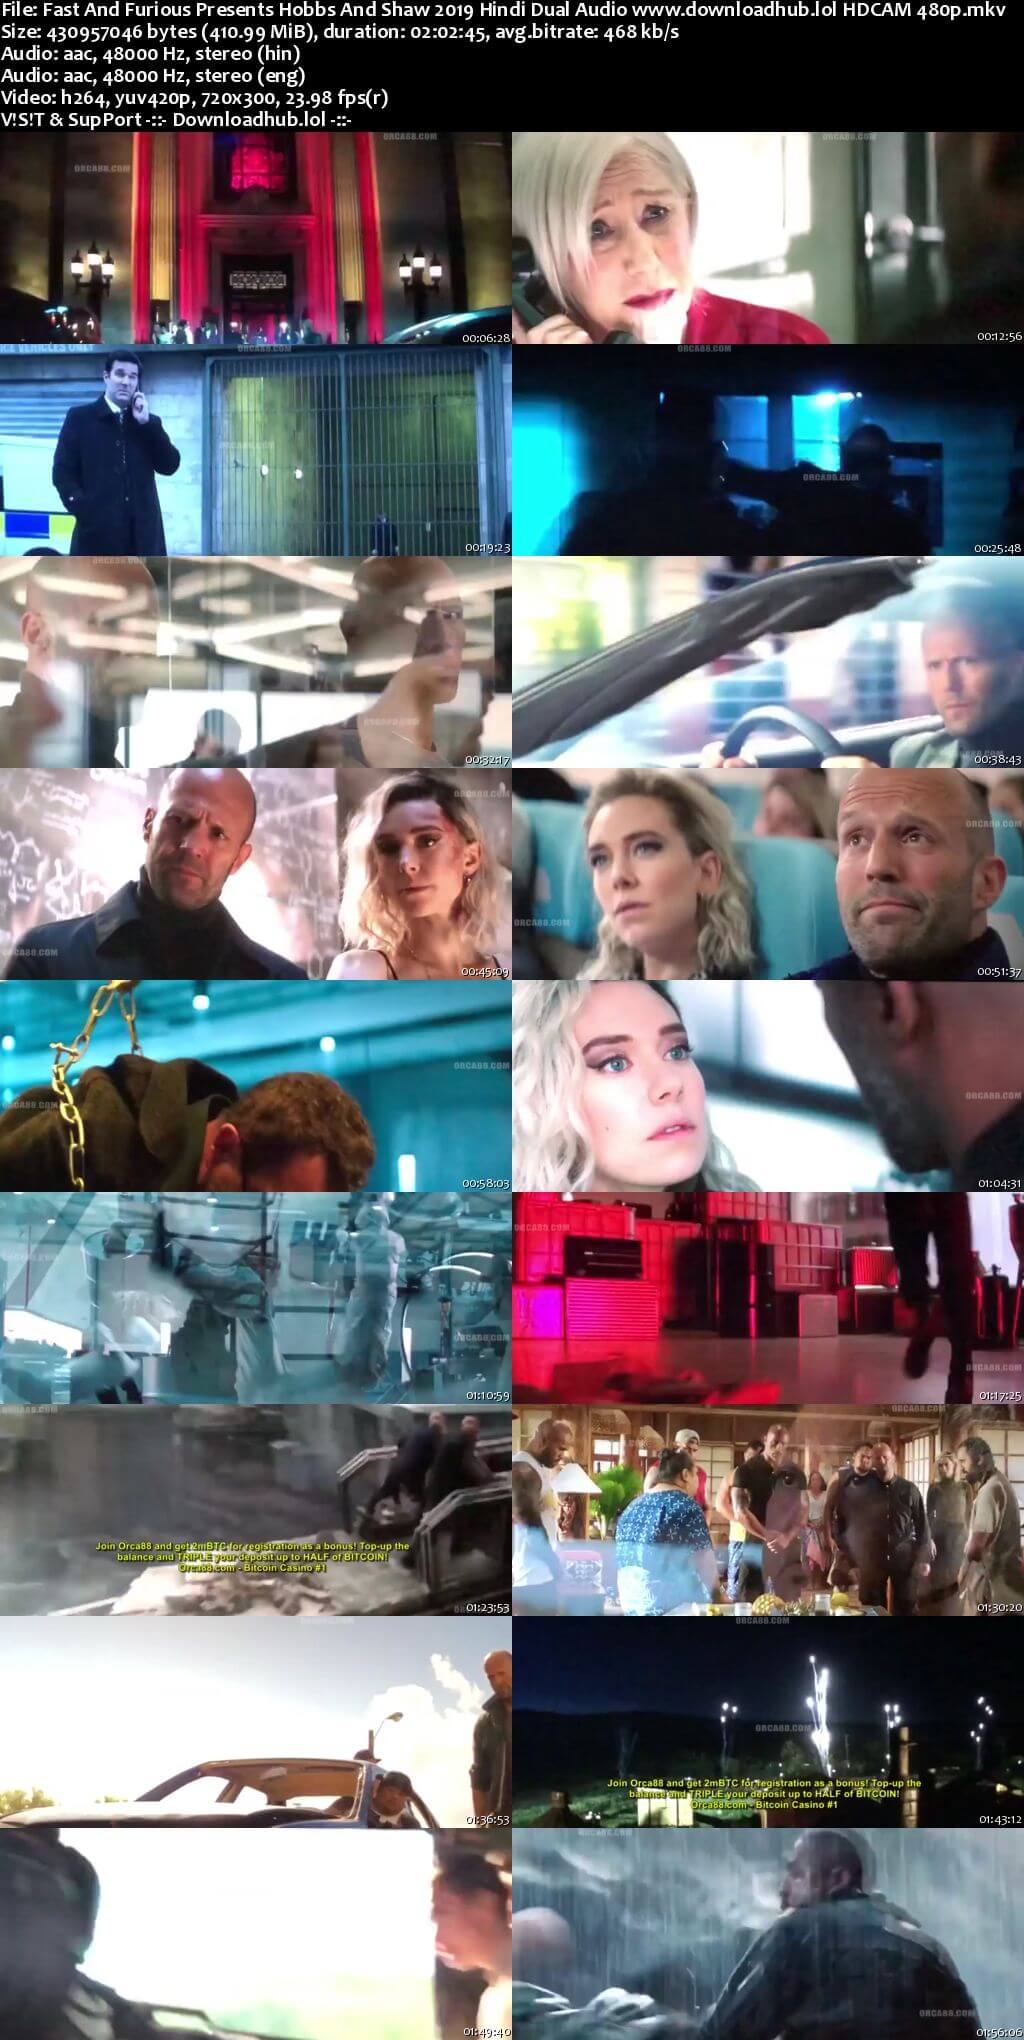 Fast And Furious Presents Hobbs And Shaw 2019 Hindi Dual Audio 400MB HDCAM 480p